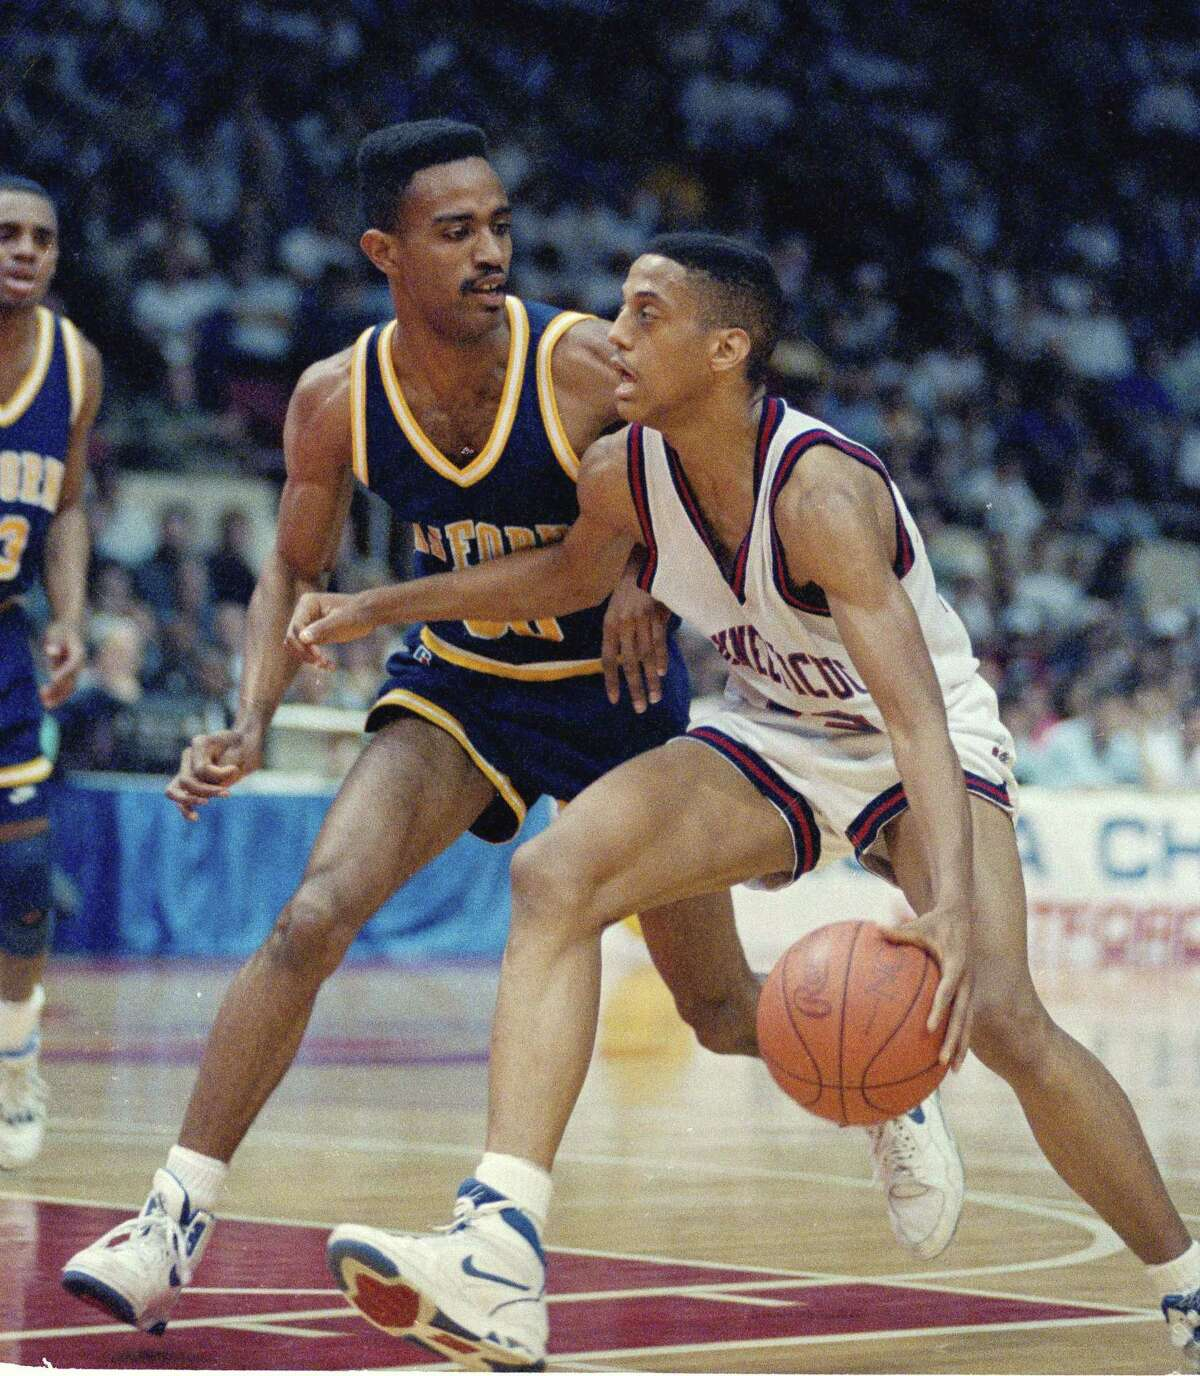 Tate George (right) during the 1990 NCAA tournament.